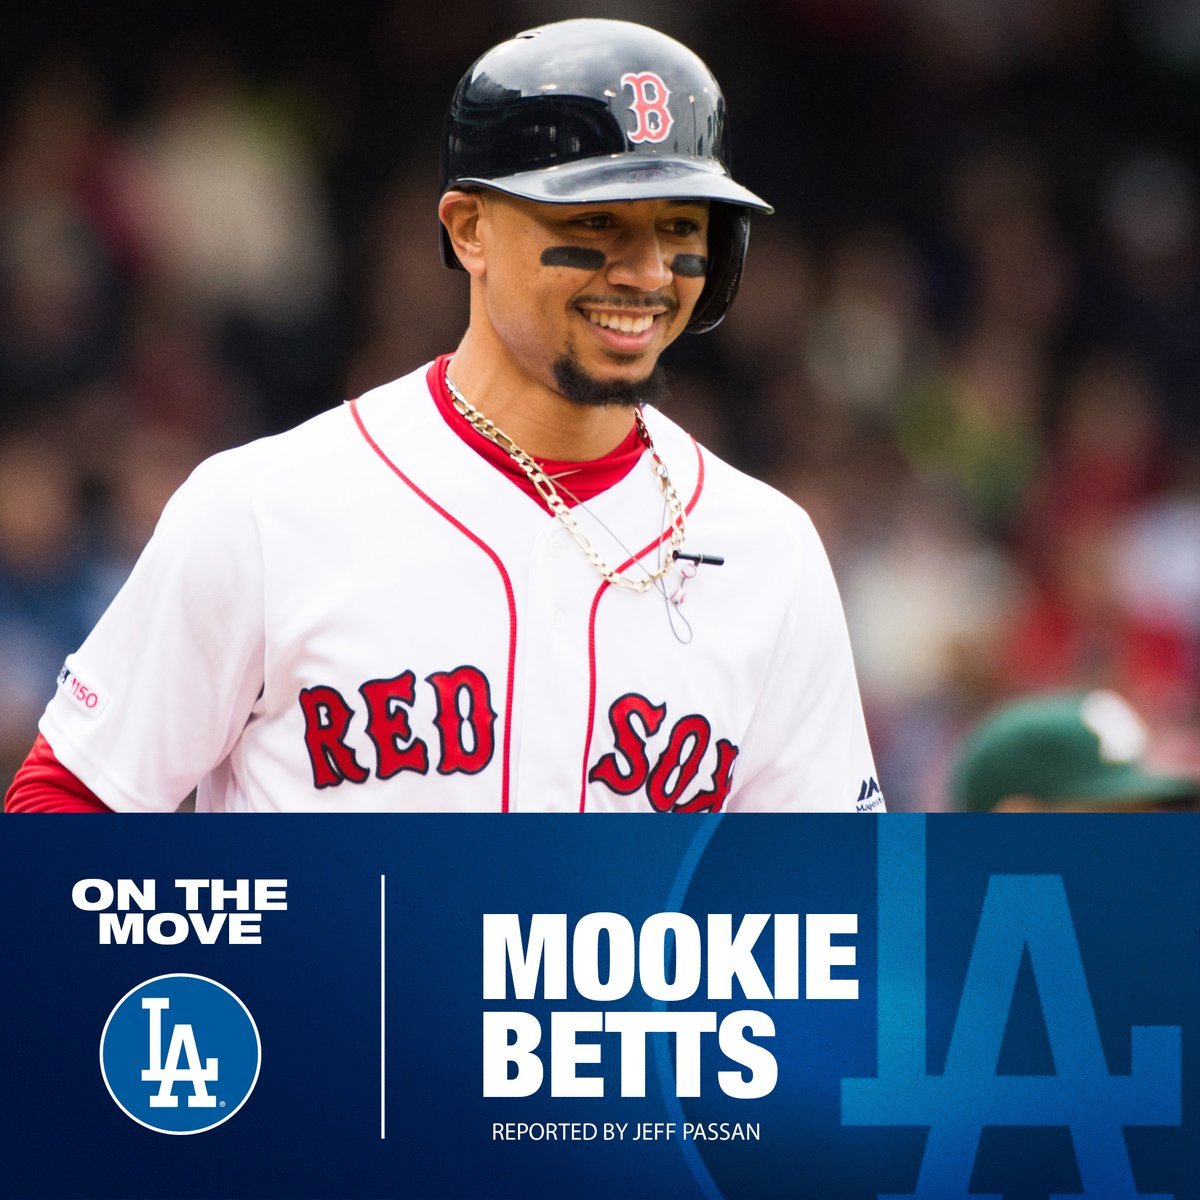 🚨 BLOCKBUSTER 🚨 Dodgers reportedly acquire Mookie Betts and David Price from the Red Sox, per @JeffPassan.